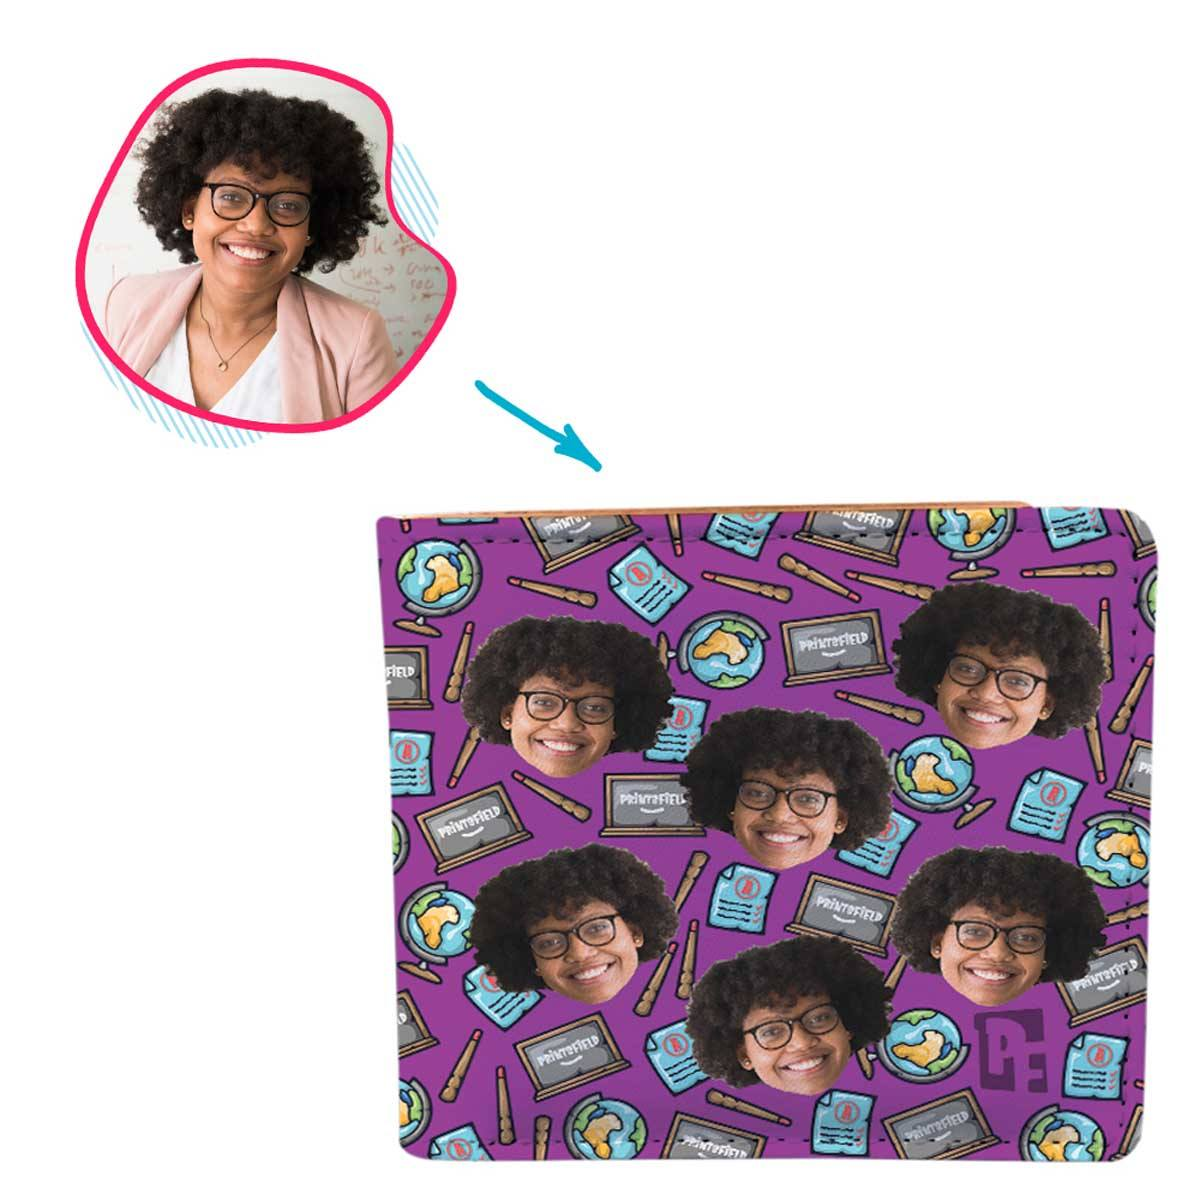 Purple Teacher personalized wallet with photo of face printed on it